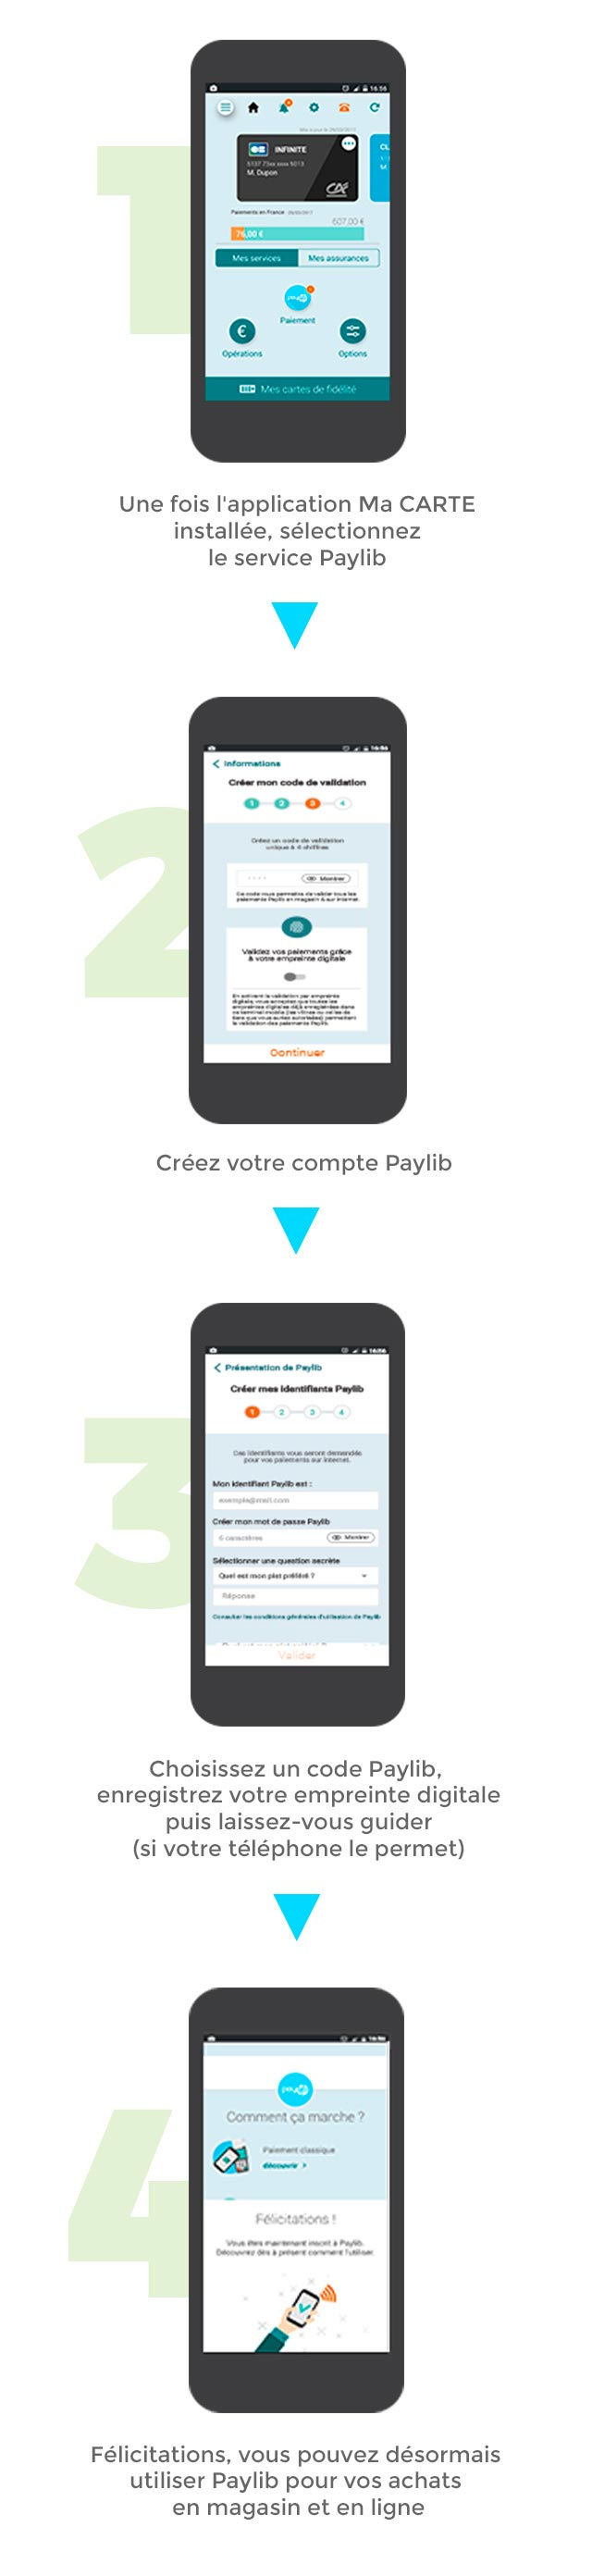 Credit Agricole Languedoc Ma Carte Mobile